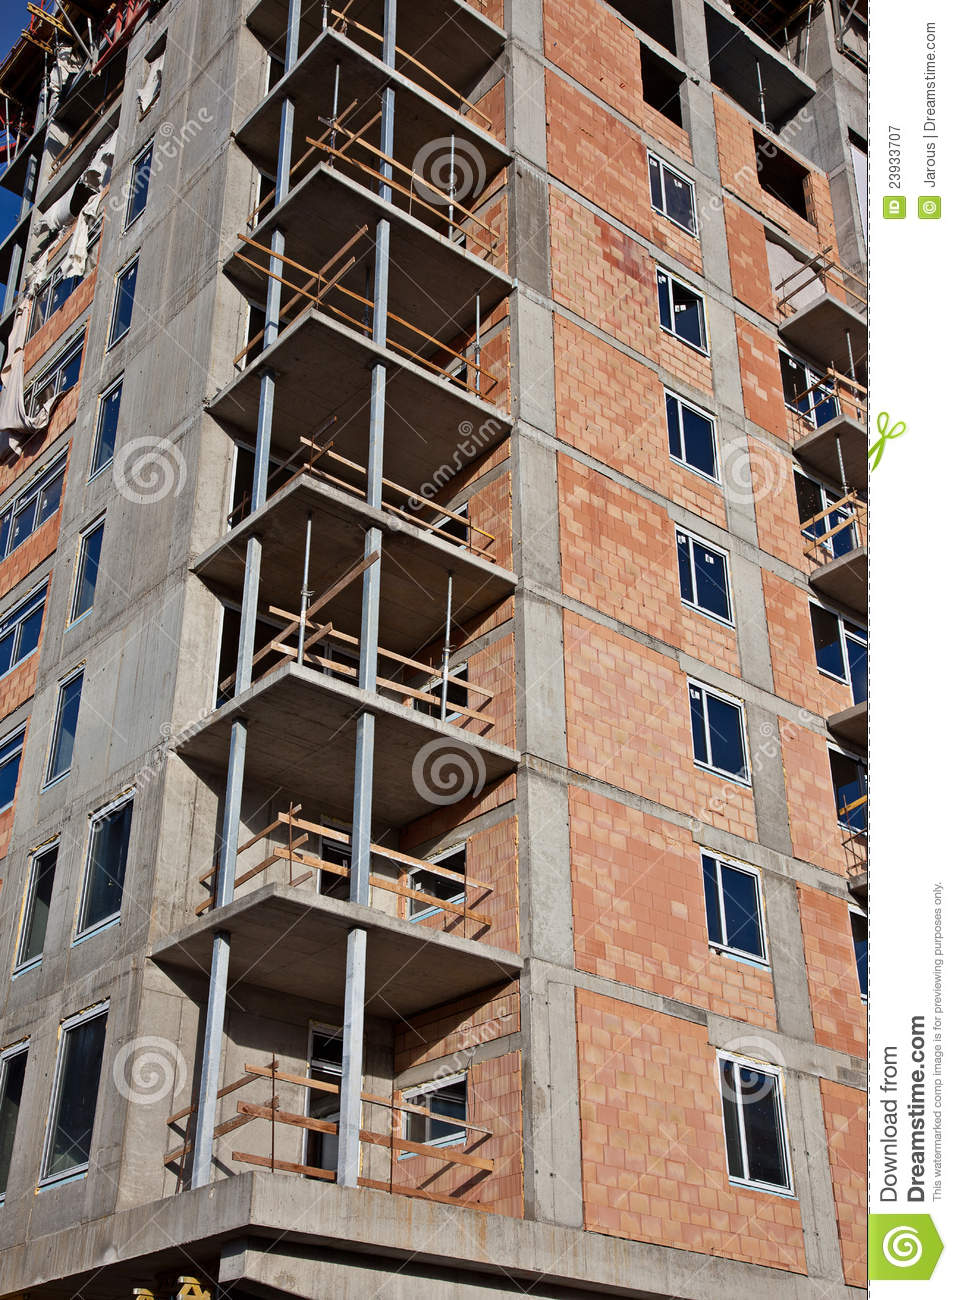 Construction du gratte ciel photographie stock libre de droits image 23933707 - Construction gratte ciel ...